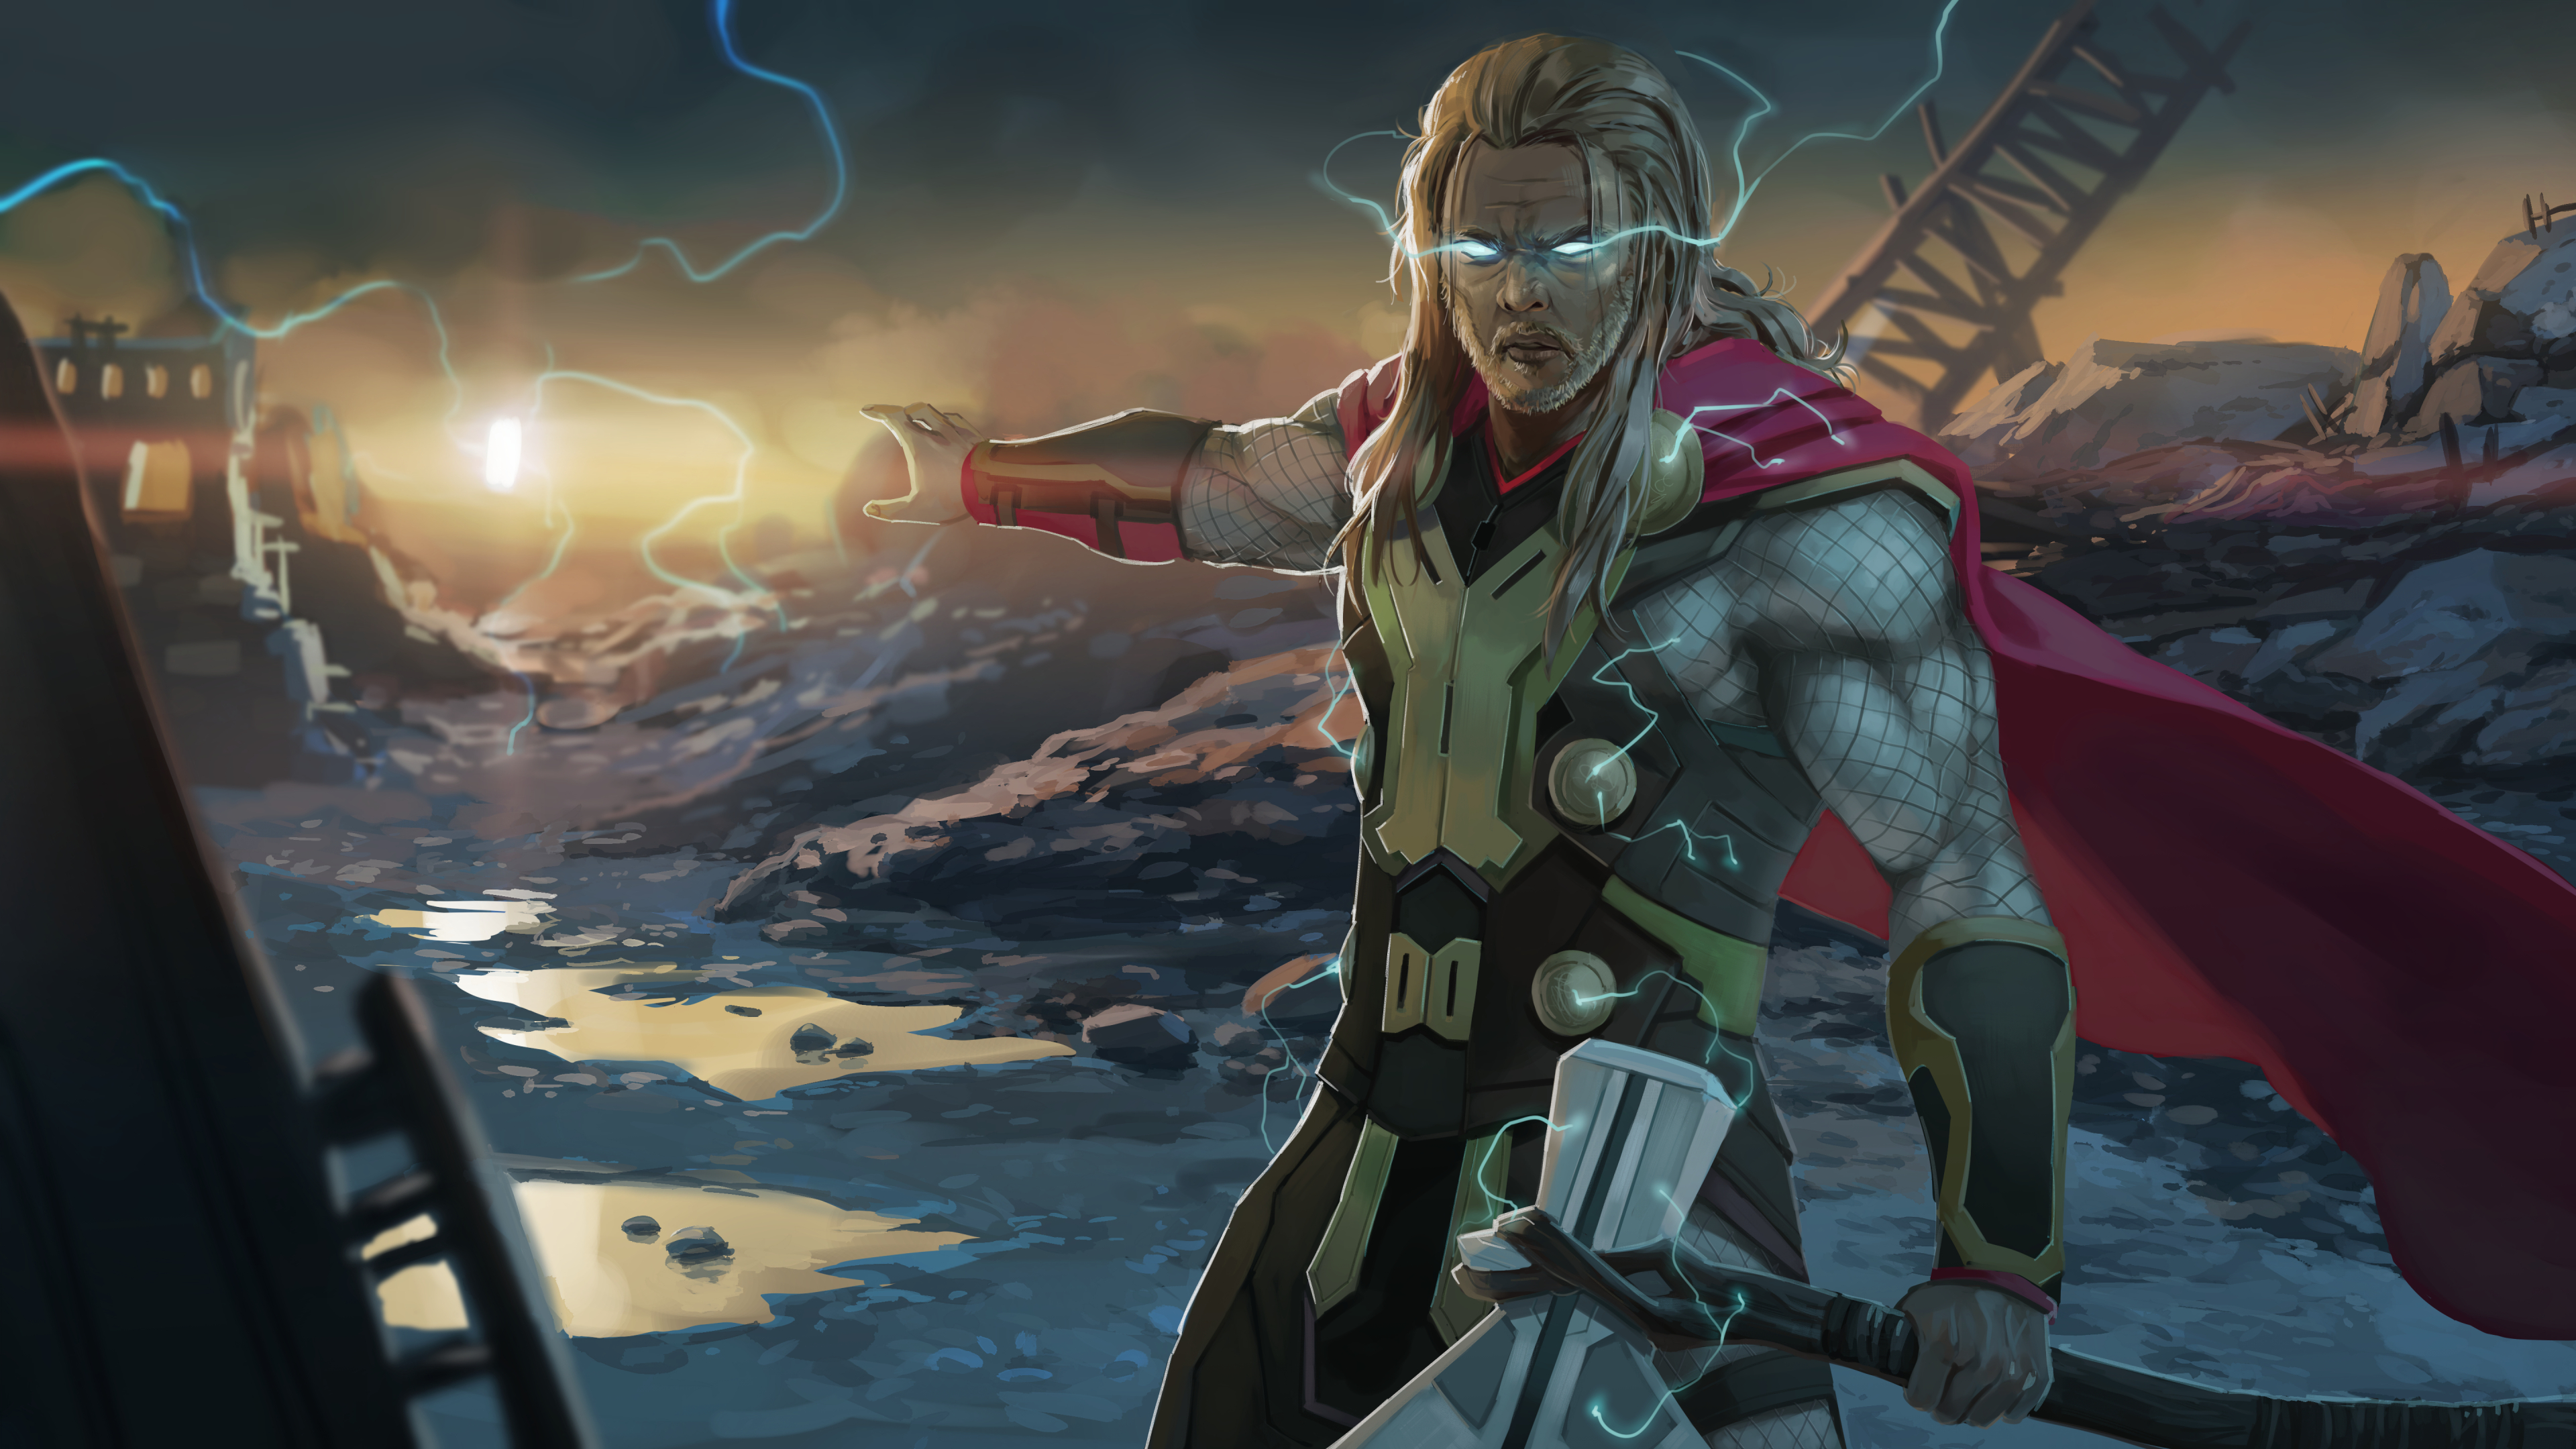 thor with two hammers 1563220034 - Thor With Two Hammers - thor wallpapers, superheroes wallpapers, hd-wallpapers, digital art wallpapers, artwork wallpapers, 4k-wallpapers